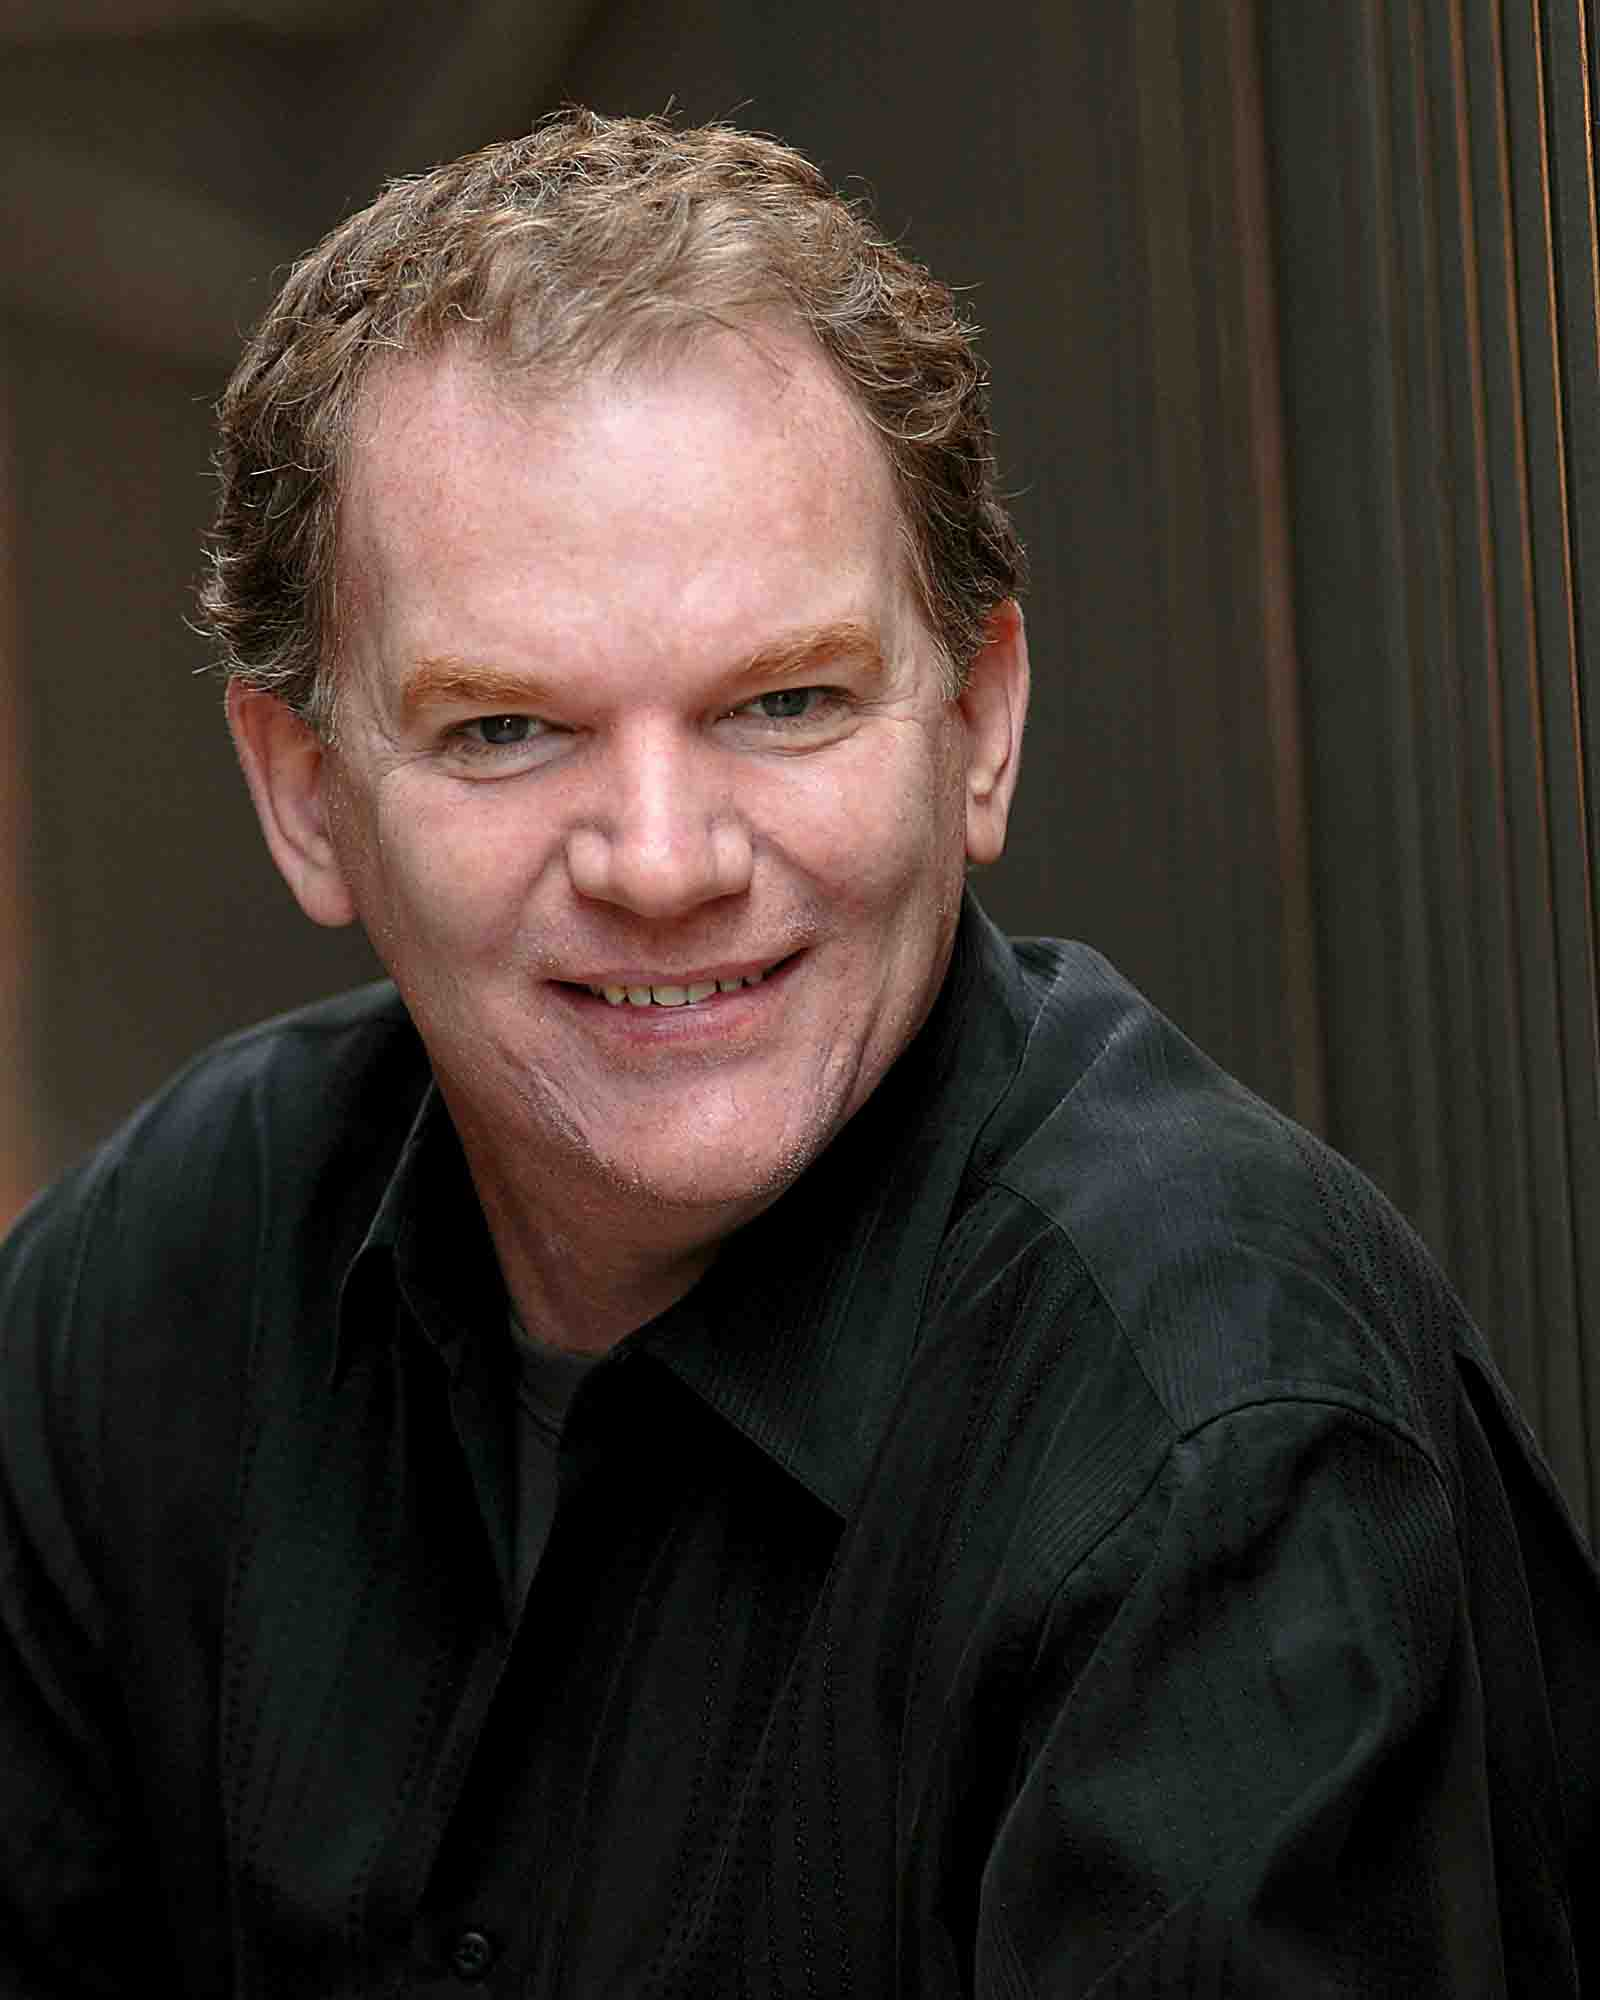 Tom Ryan comedian available for hire (photo of the comedian)